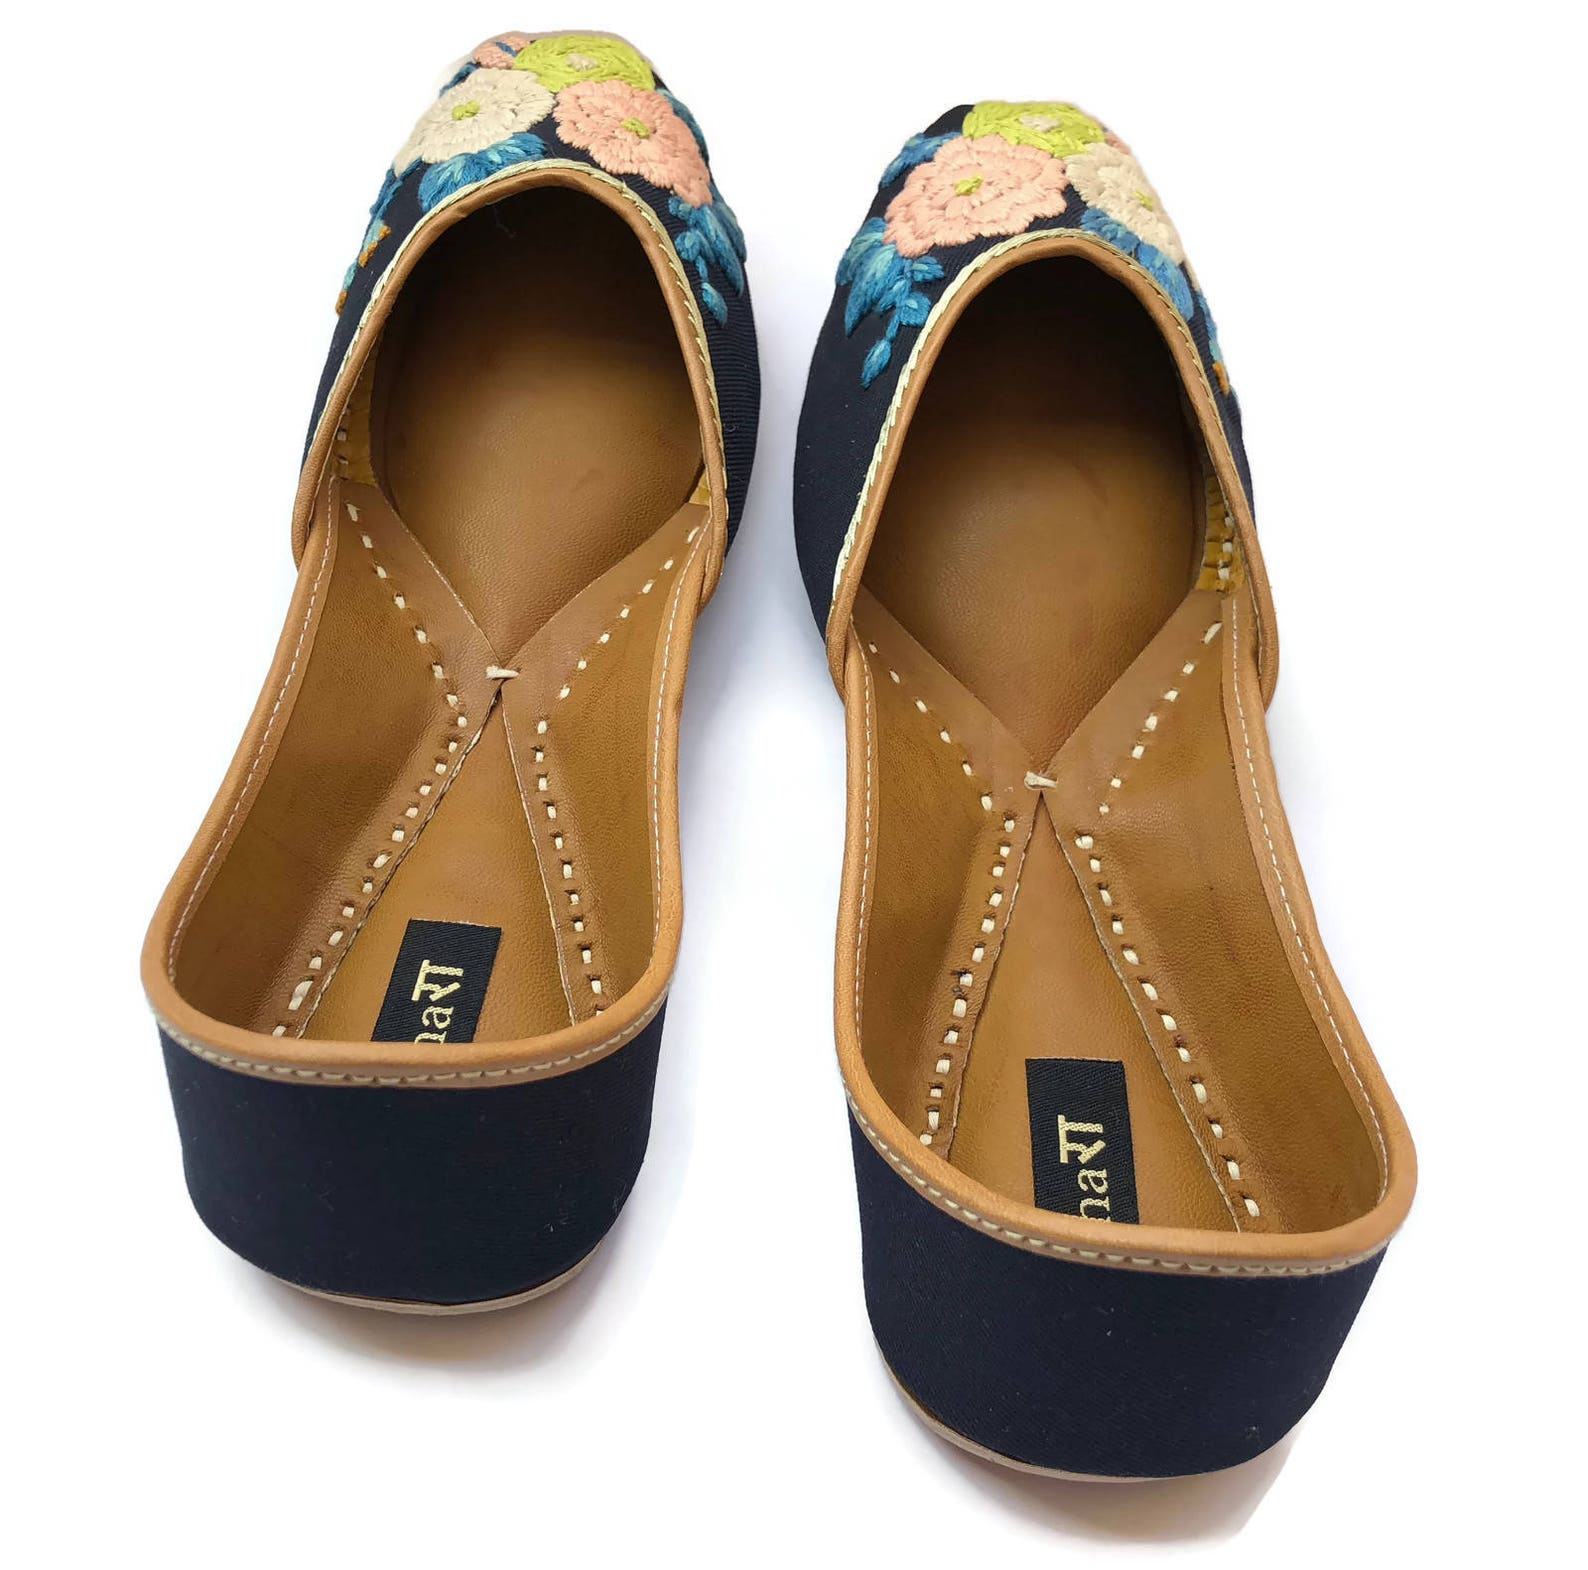 the pastel blossom - enhara designer ballet flat shoes/navy blue flower embroidered shoes/handmade indian ethnic women shoes or